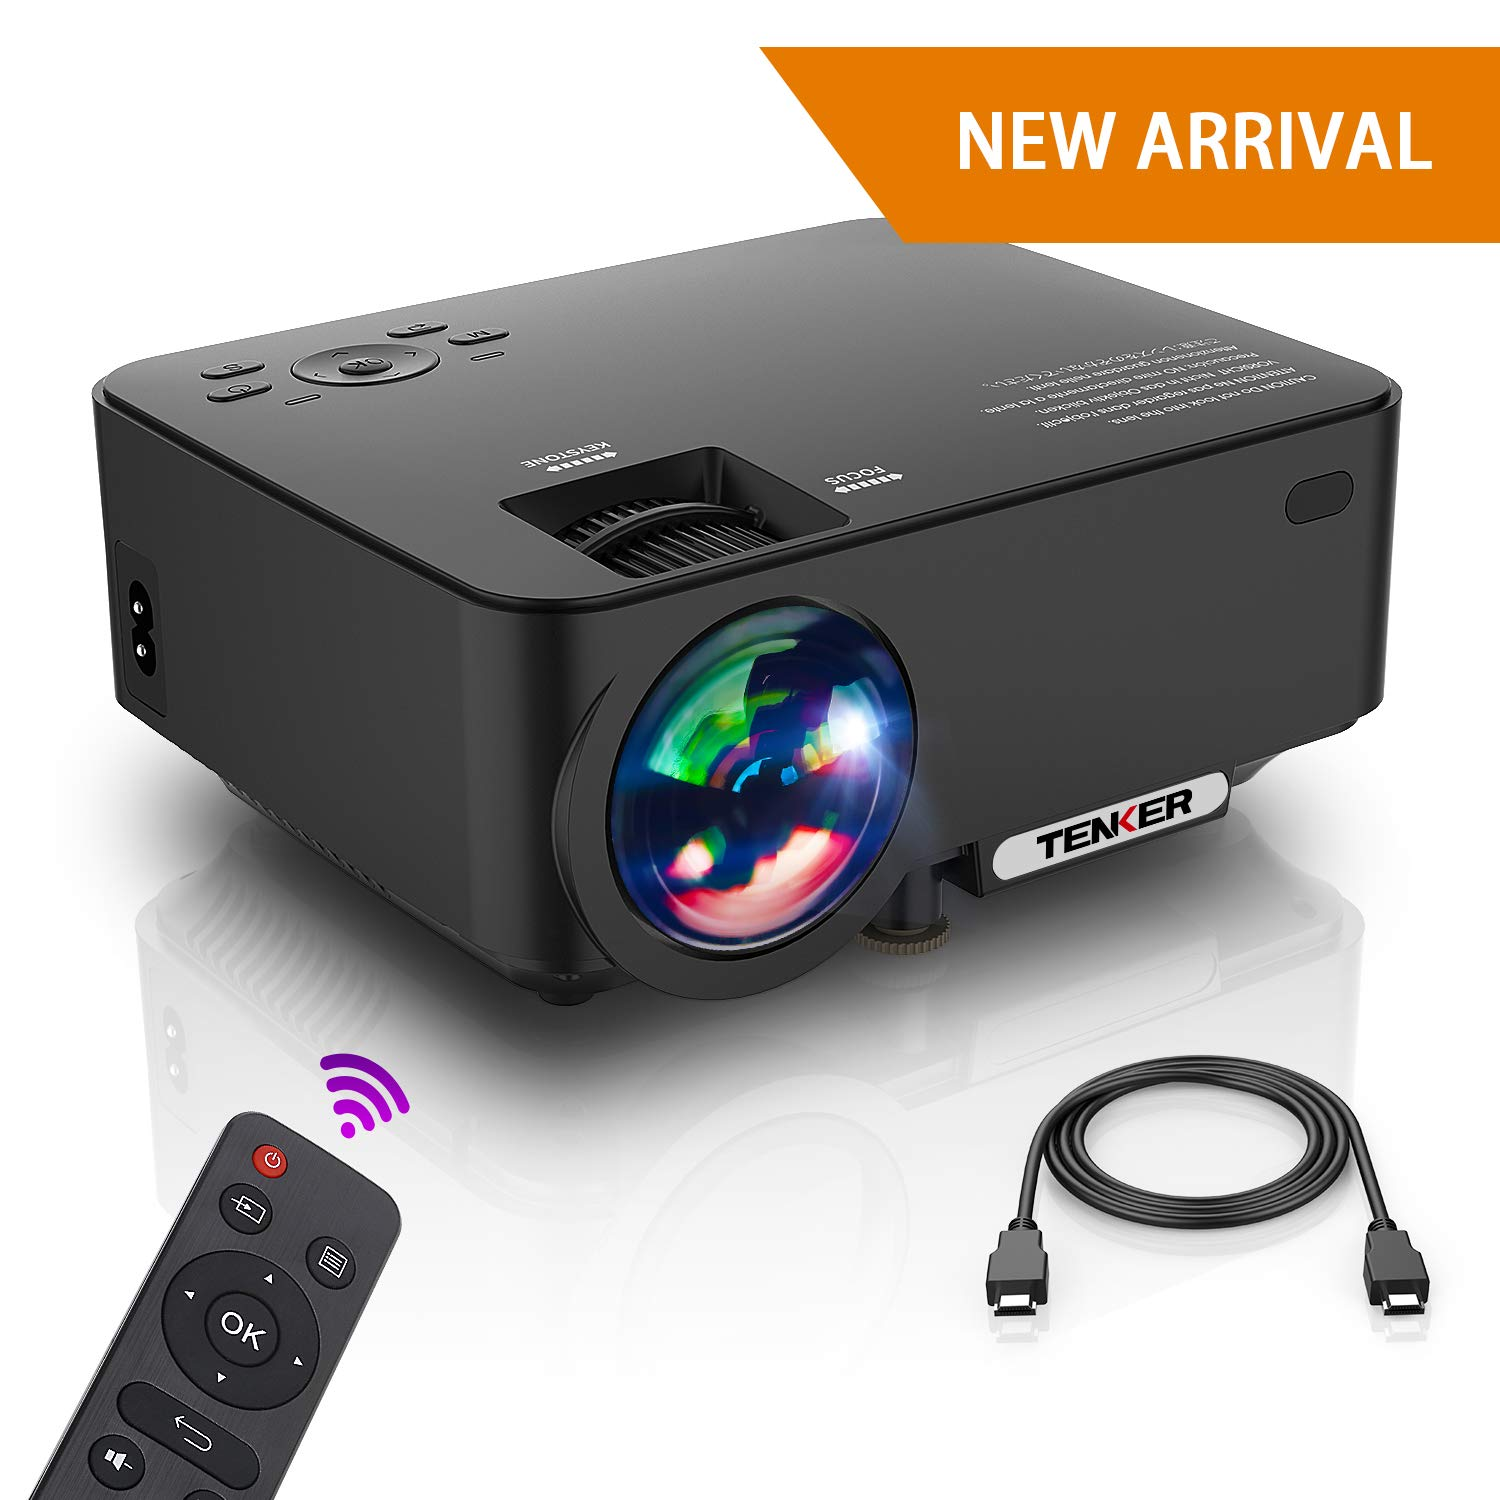 Projector, Upgraded TENKER Projector, Now 65% Brighter, Mini Home Theater Movie Projector with 4.0'' LCD and Up To 176-inch Display, Supports 1080P HDMI/USB/SD Card/AV/VGA for TVs/Laptops/Games (Black)